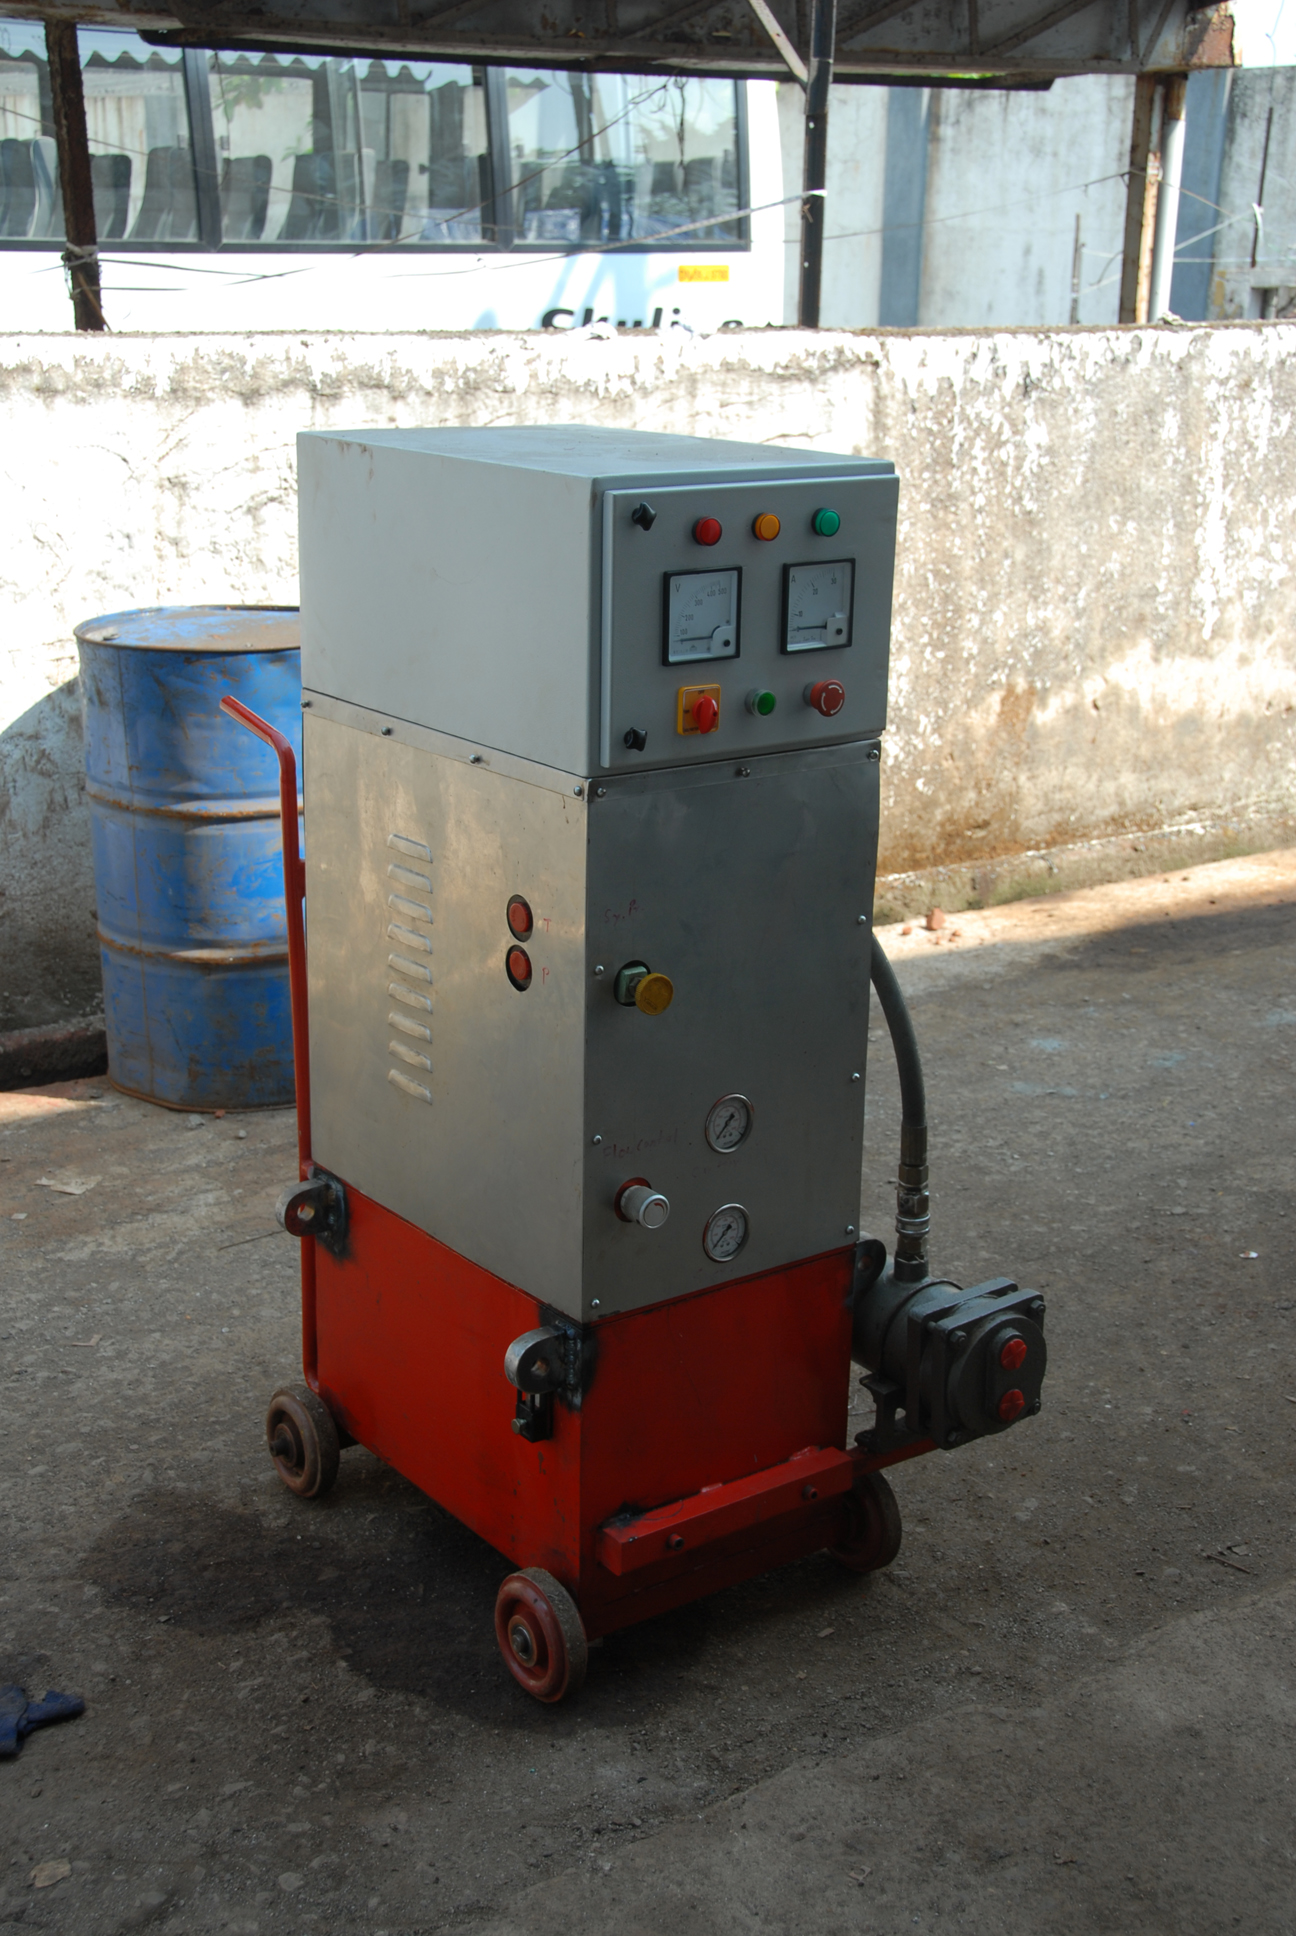 Portable power unit with stainless steel panelling for Hilti concrete cutter